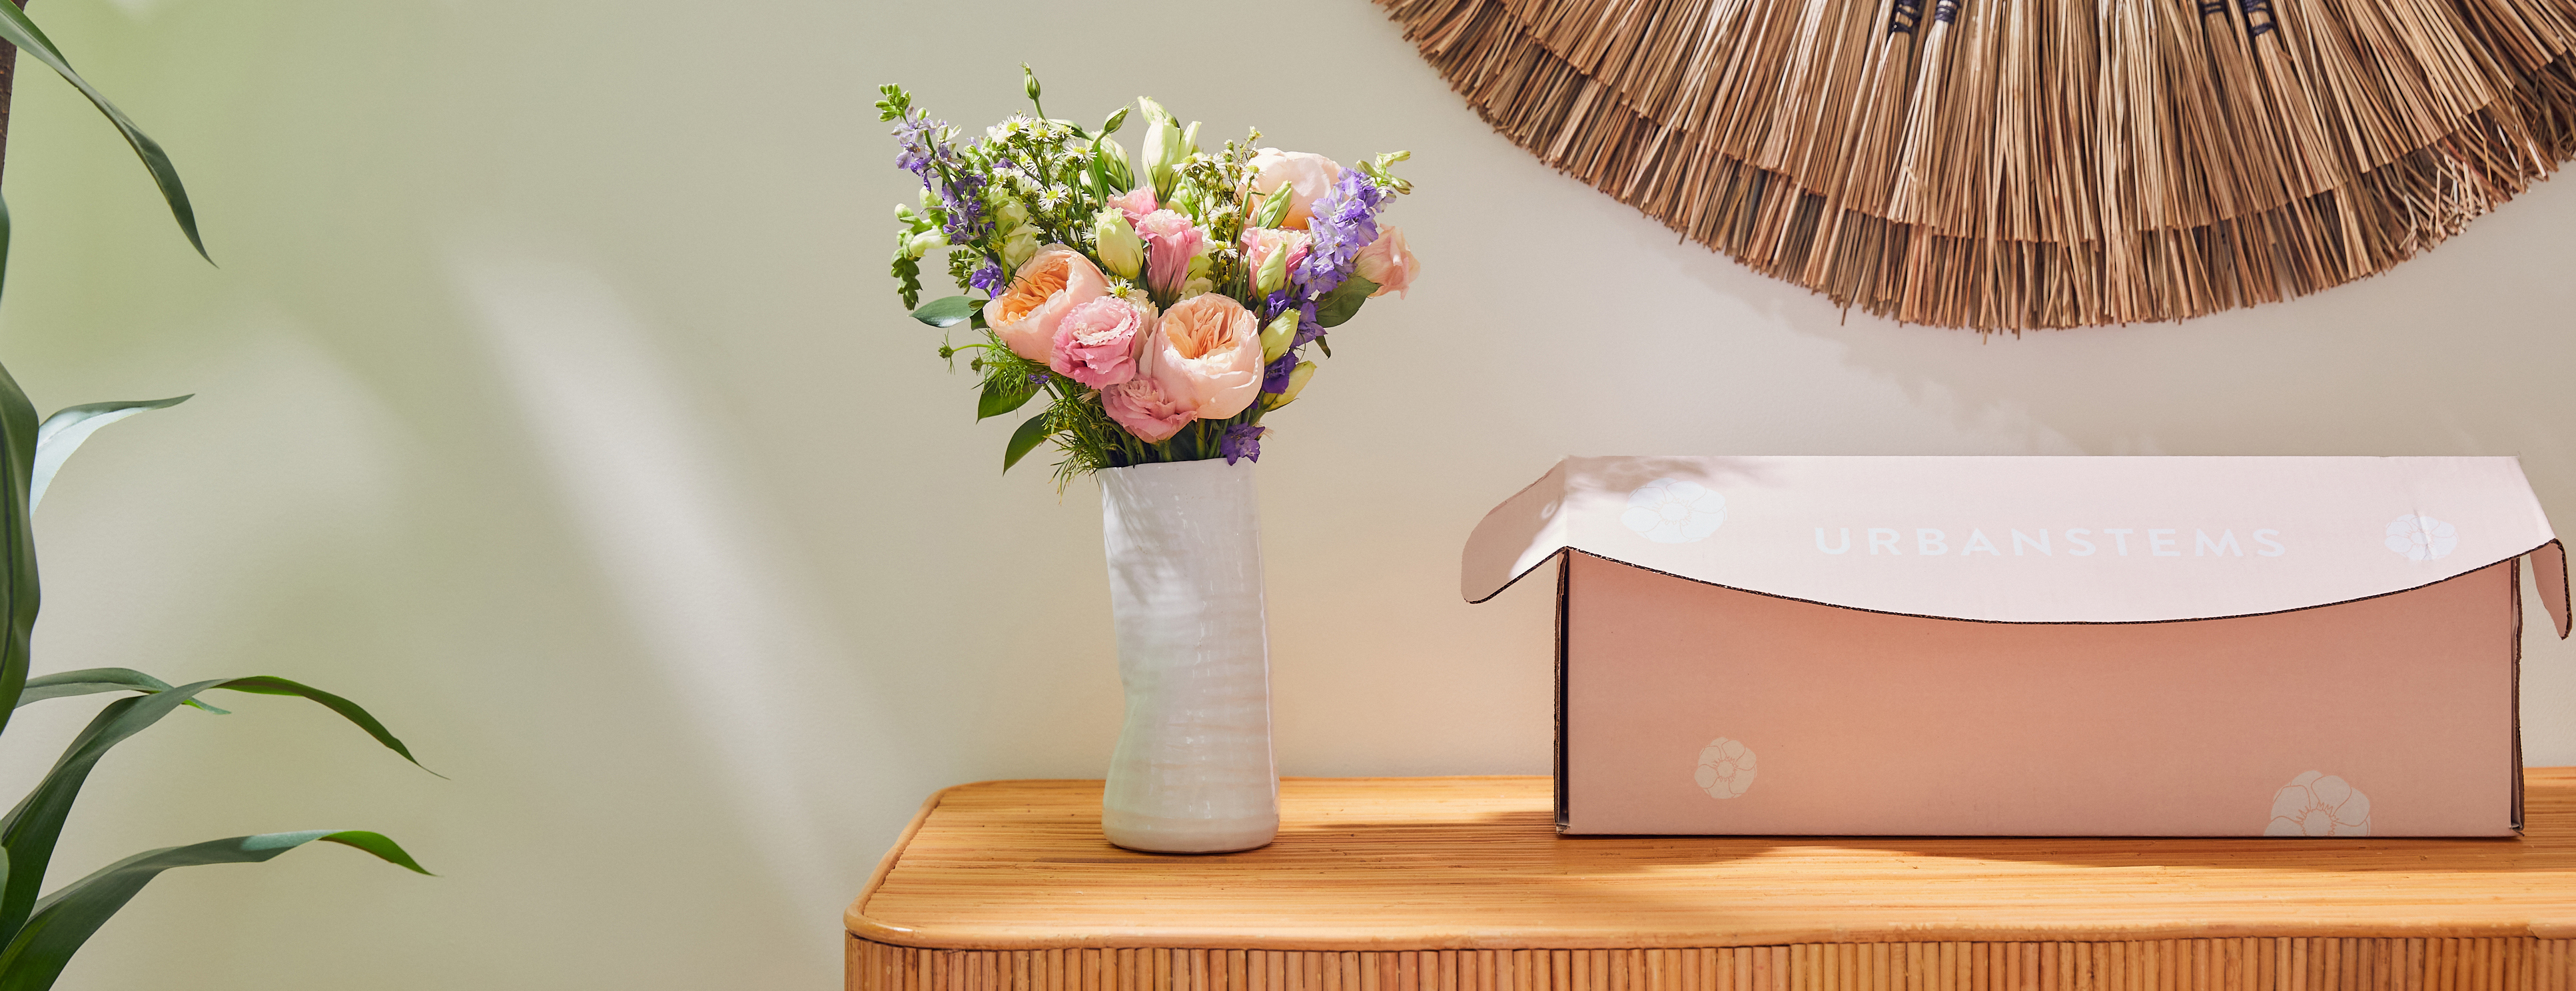 Multicolored flower bouquet and pink box on table.